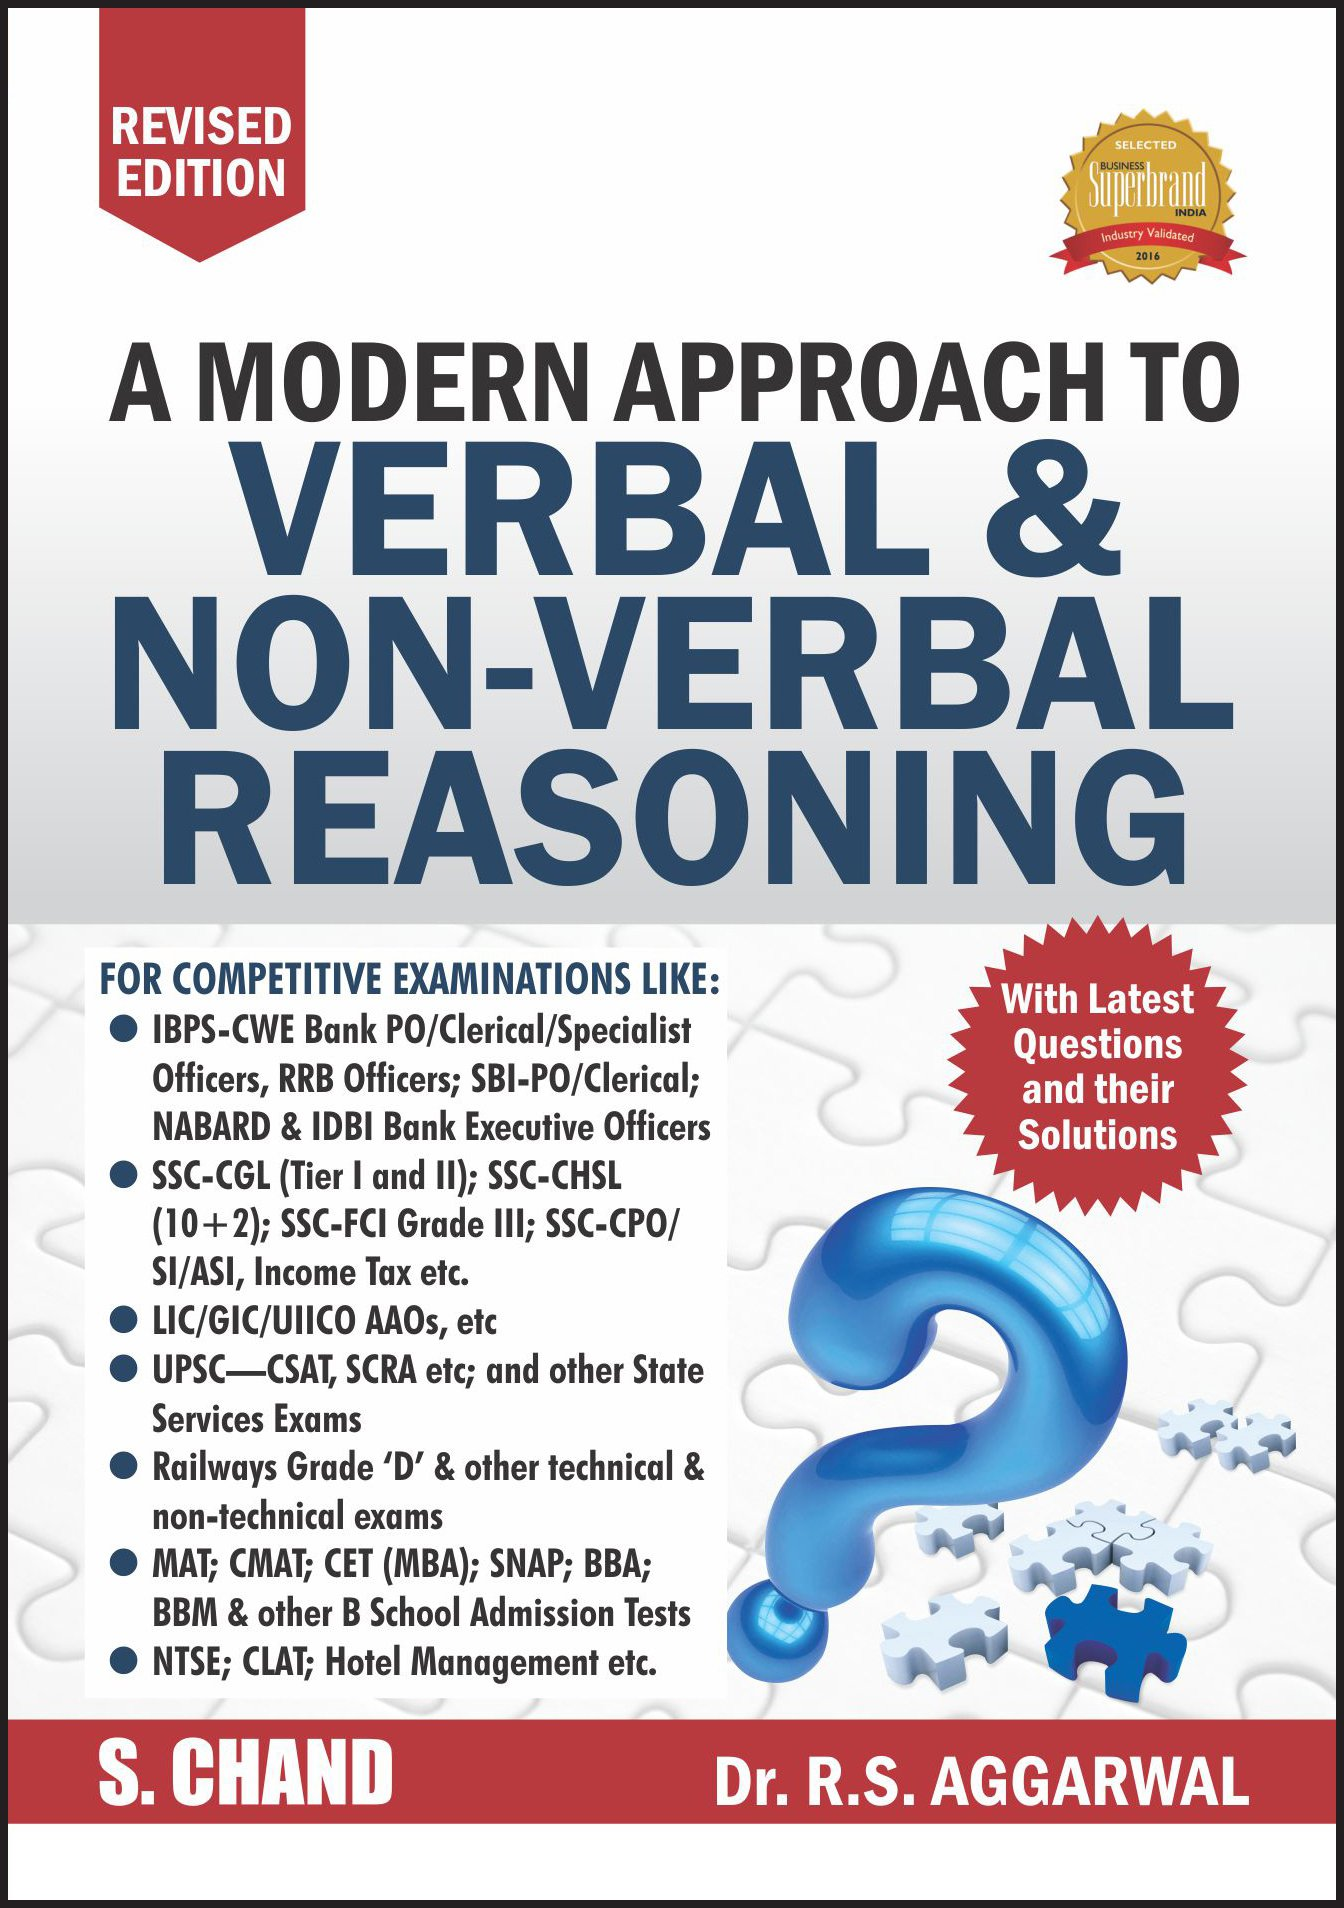 Best Reasoning Books For Placement Preparation - A Modern Approach to verbal and non-verbal Reasoning by R.S.Aggarwal